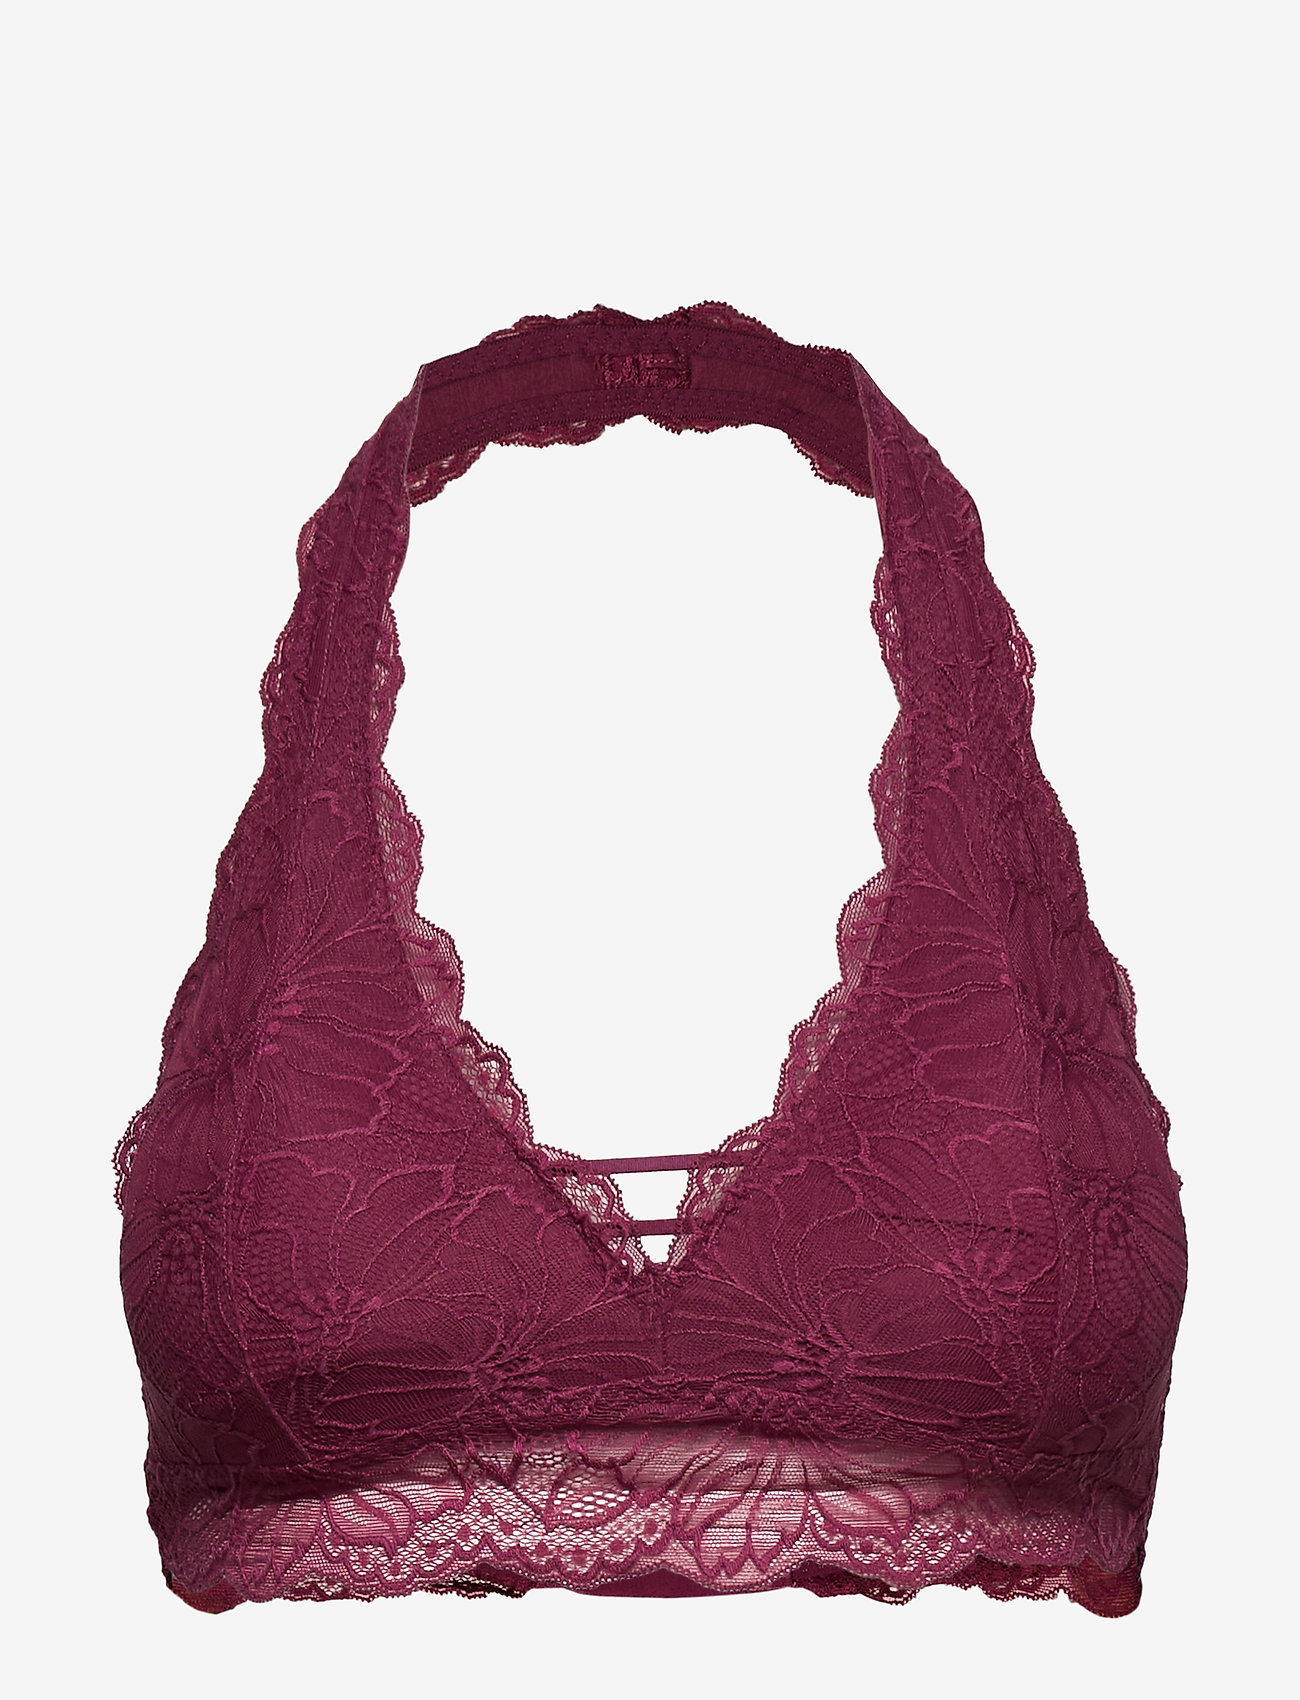 Gilly Hicks - Lace Halter - bralette & corset - burg lace